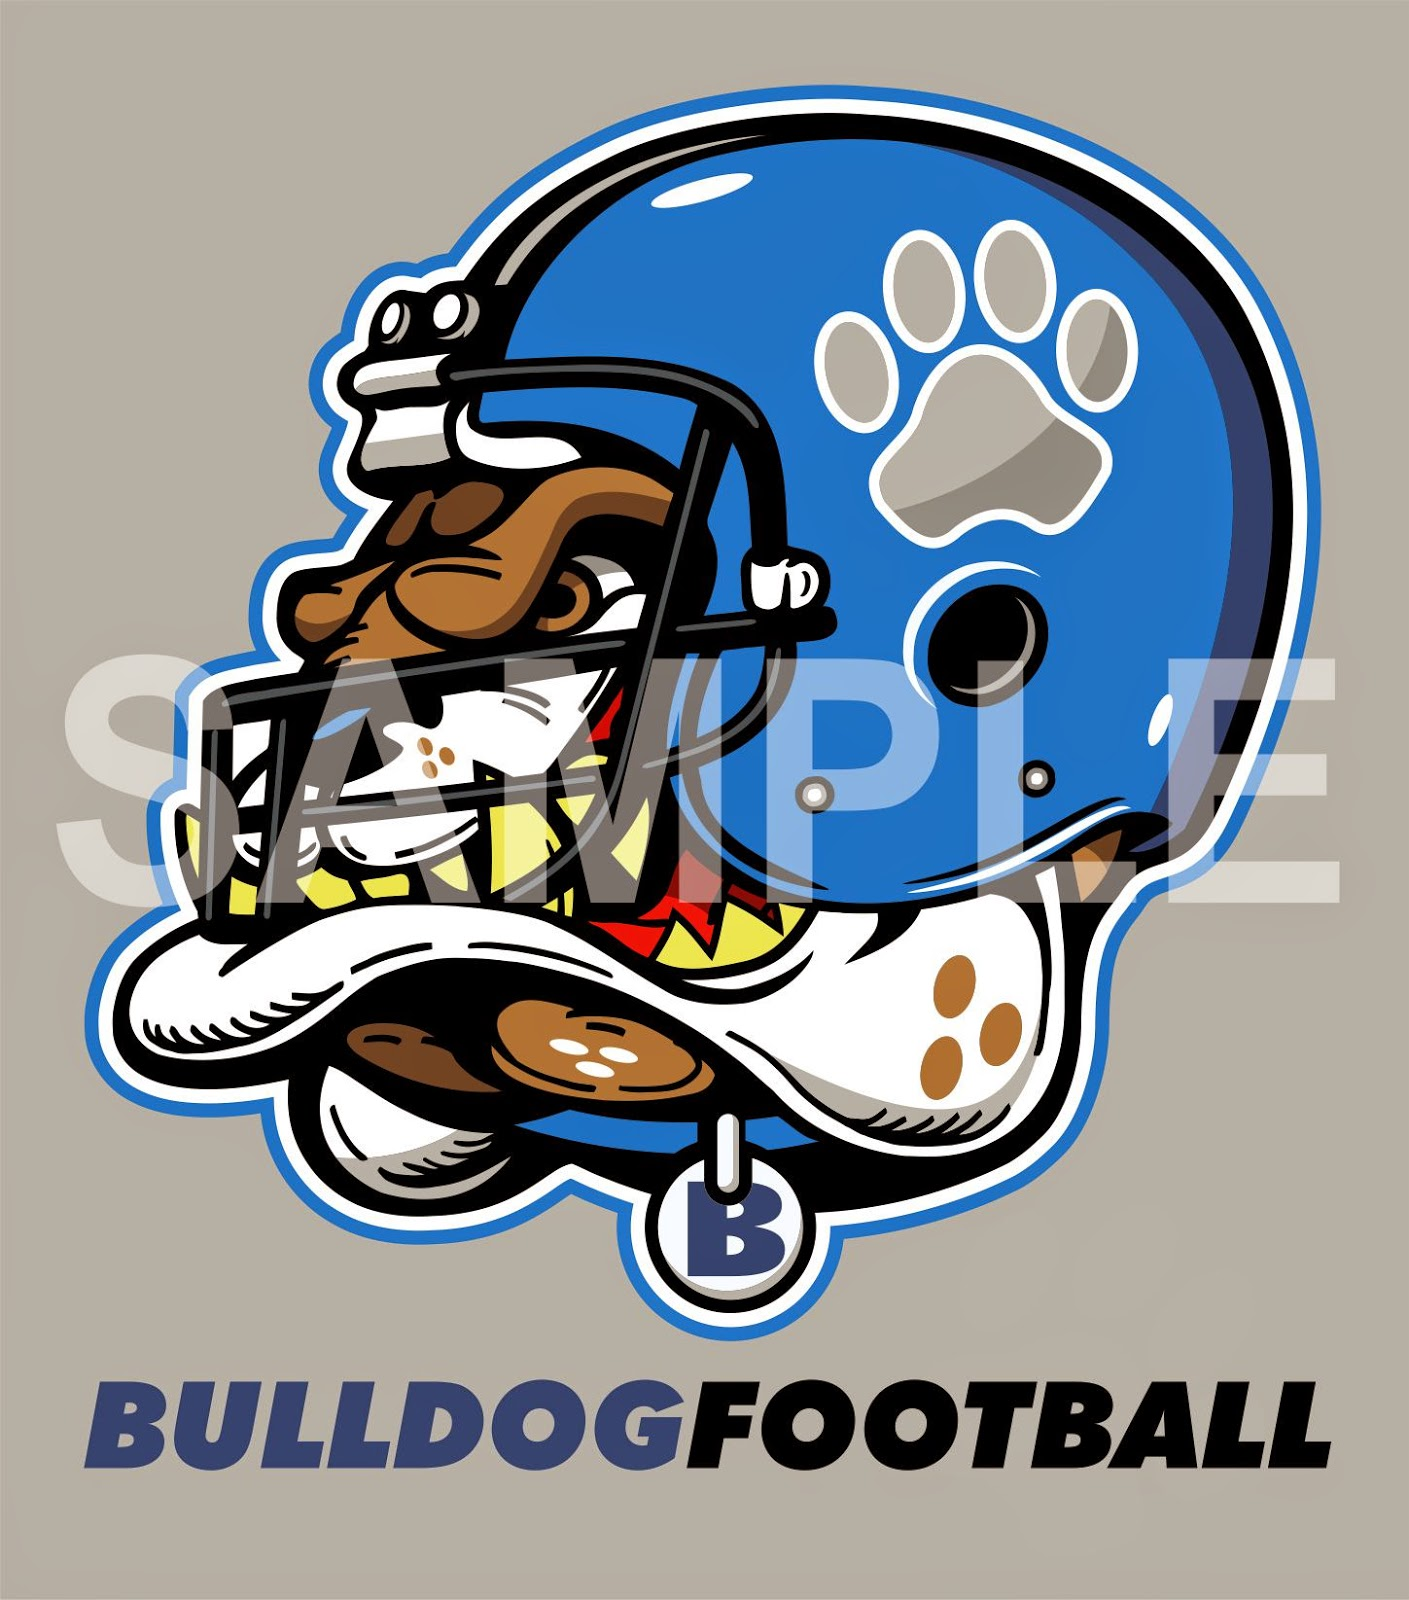 EARLFERGUSONstudio: BULLDOG FOOTBALL MASCOT CLIP ART